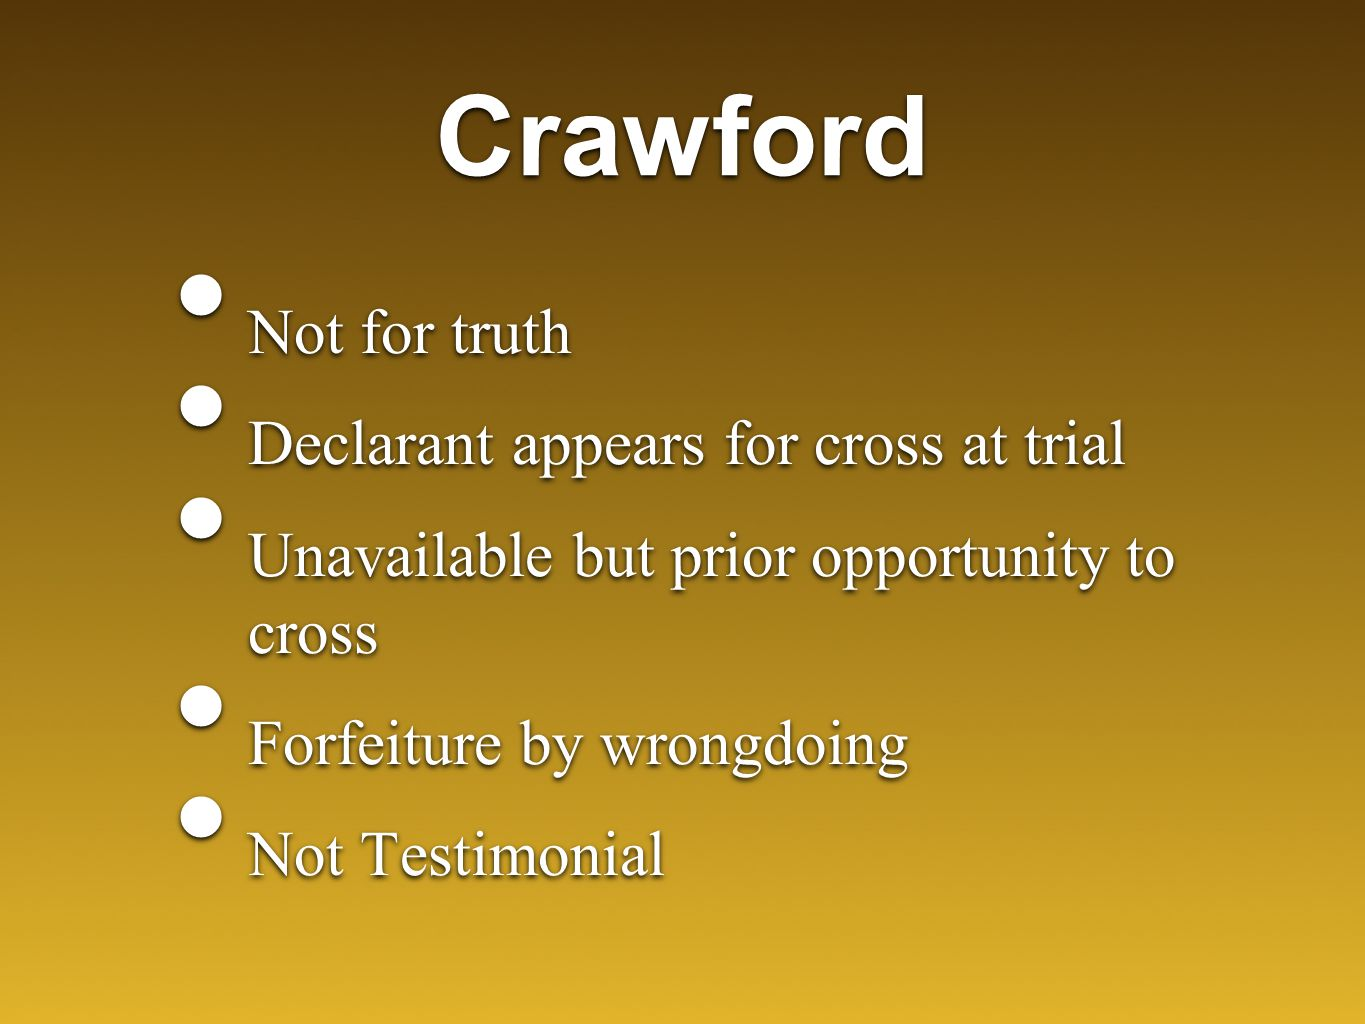 Crawford Not for truth Declarant appears for cross at trial Unavailable but prior opportunity to cross Forfeiture by wrongdoing Not Testimonial Not for truth Declarant appears for cross at trial Unavailable but prior opportunity to cross Forfeiture by wrongdoing Not Testimonial